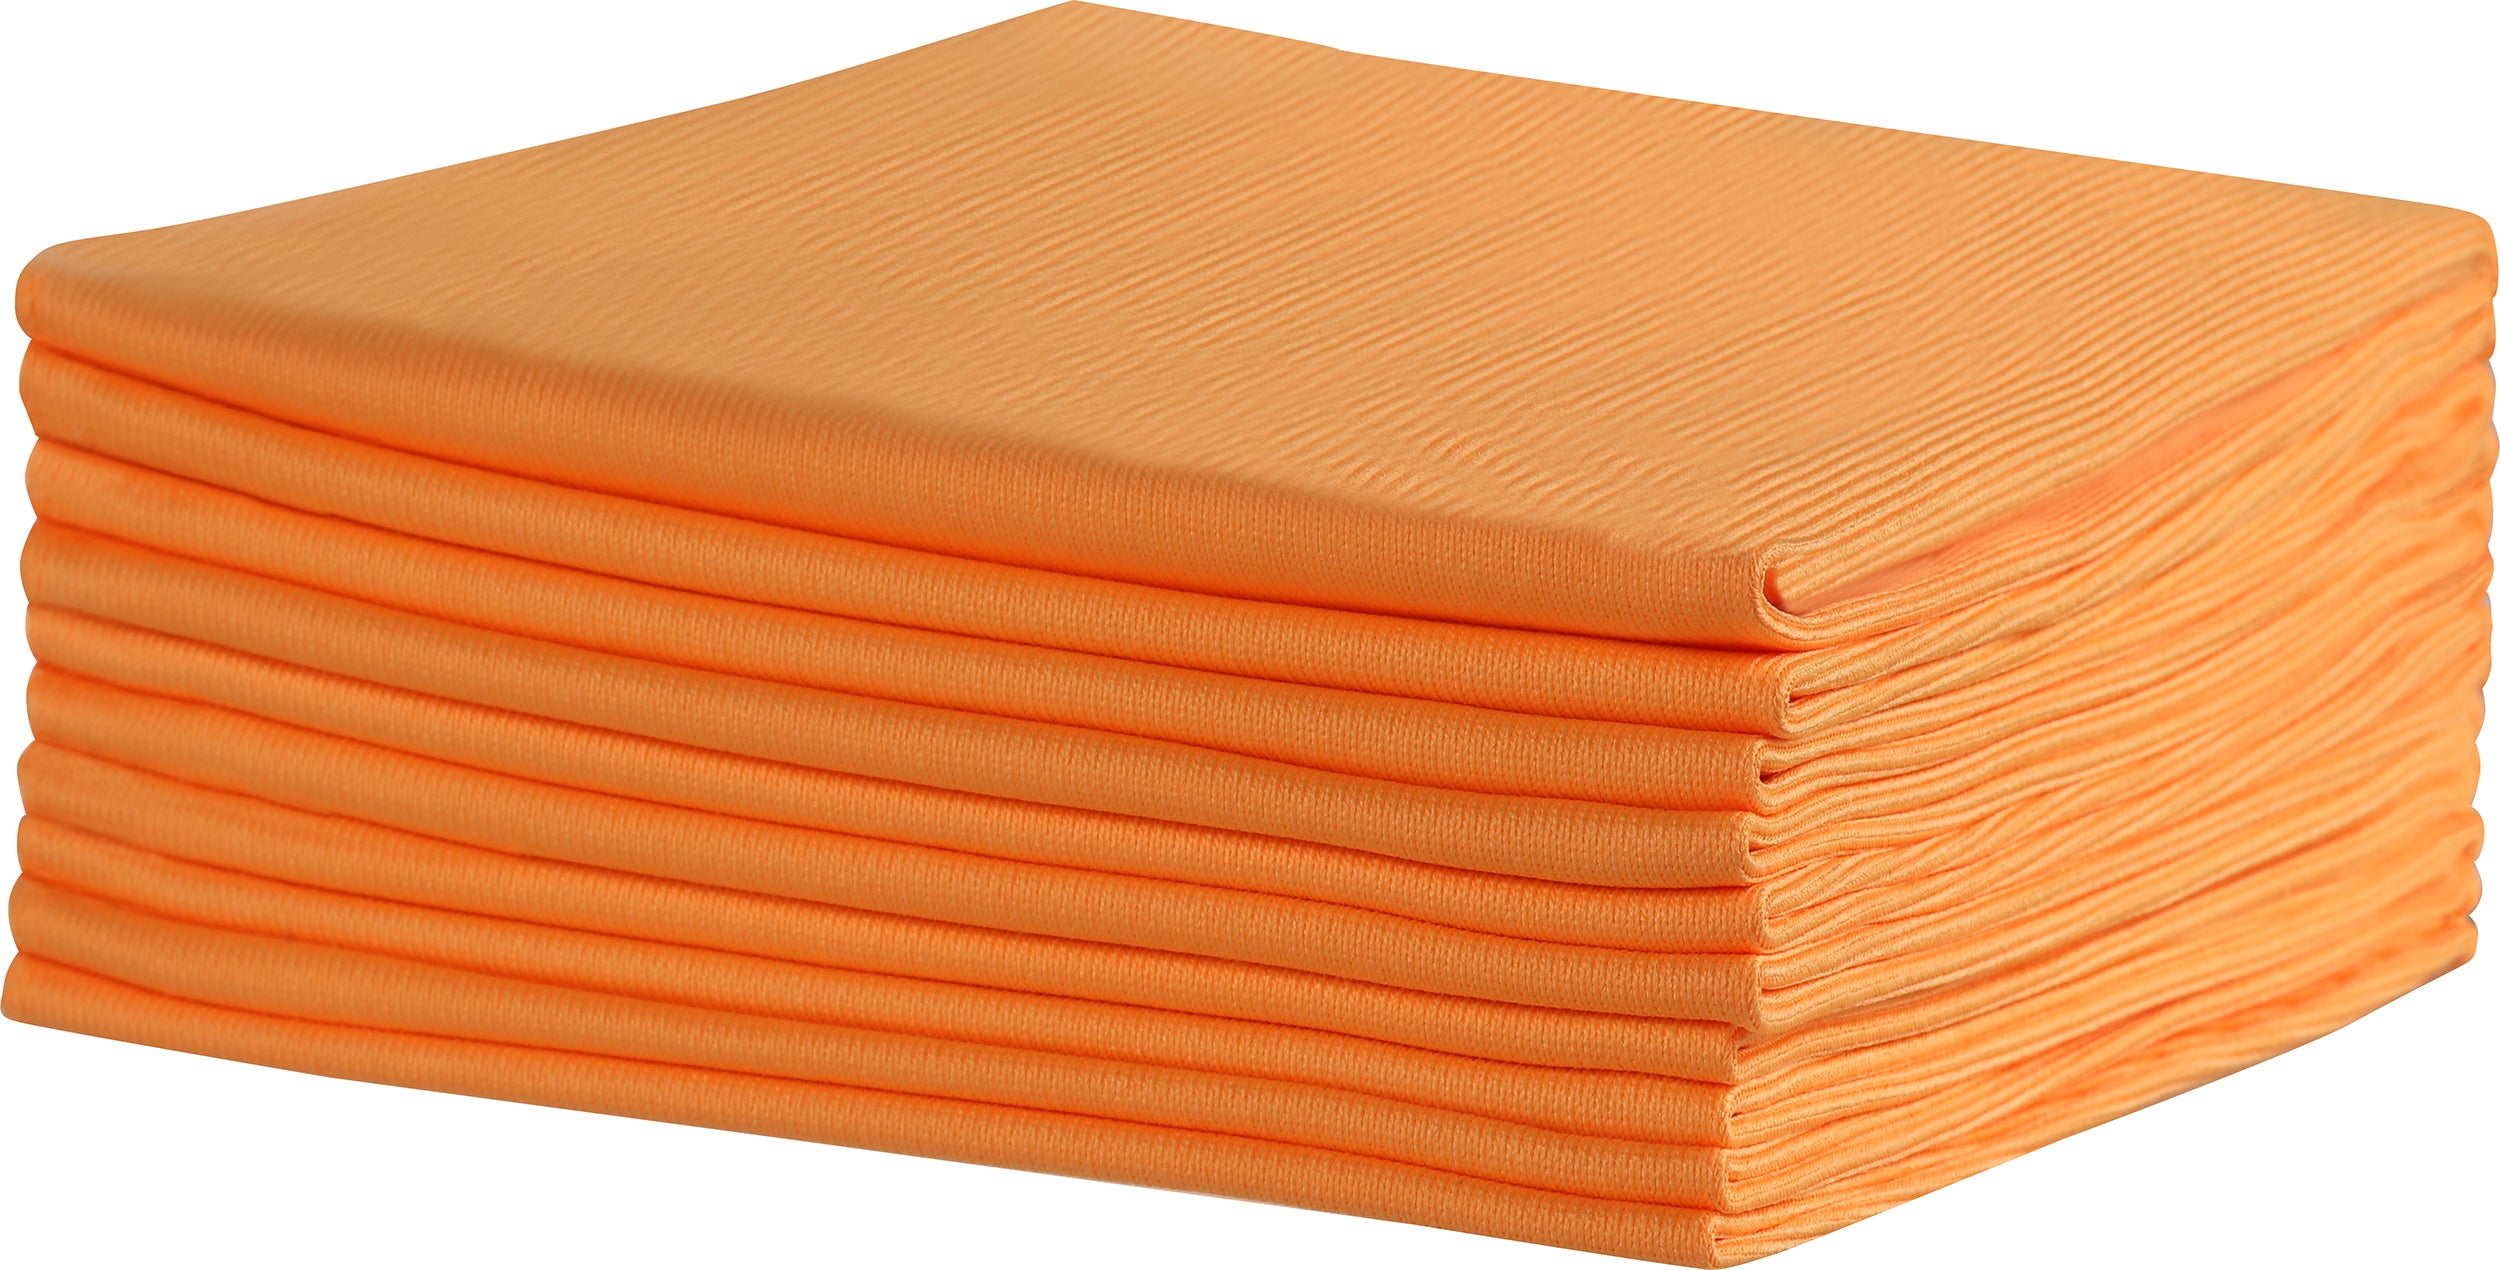 FILTA VISSY COMMERCIAL MICROFIBRE CLOTH ORANGE 40CM X 40CM